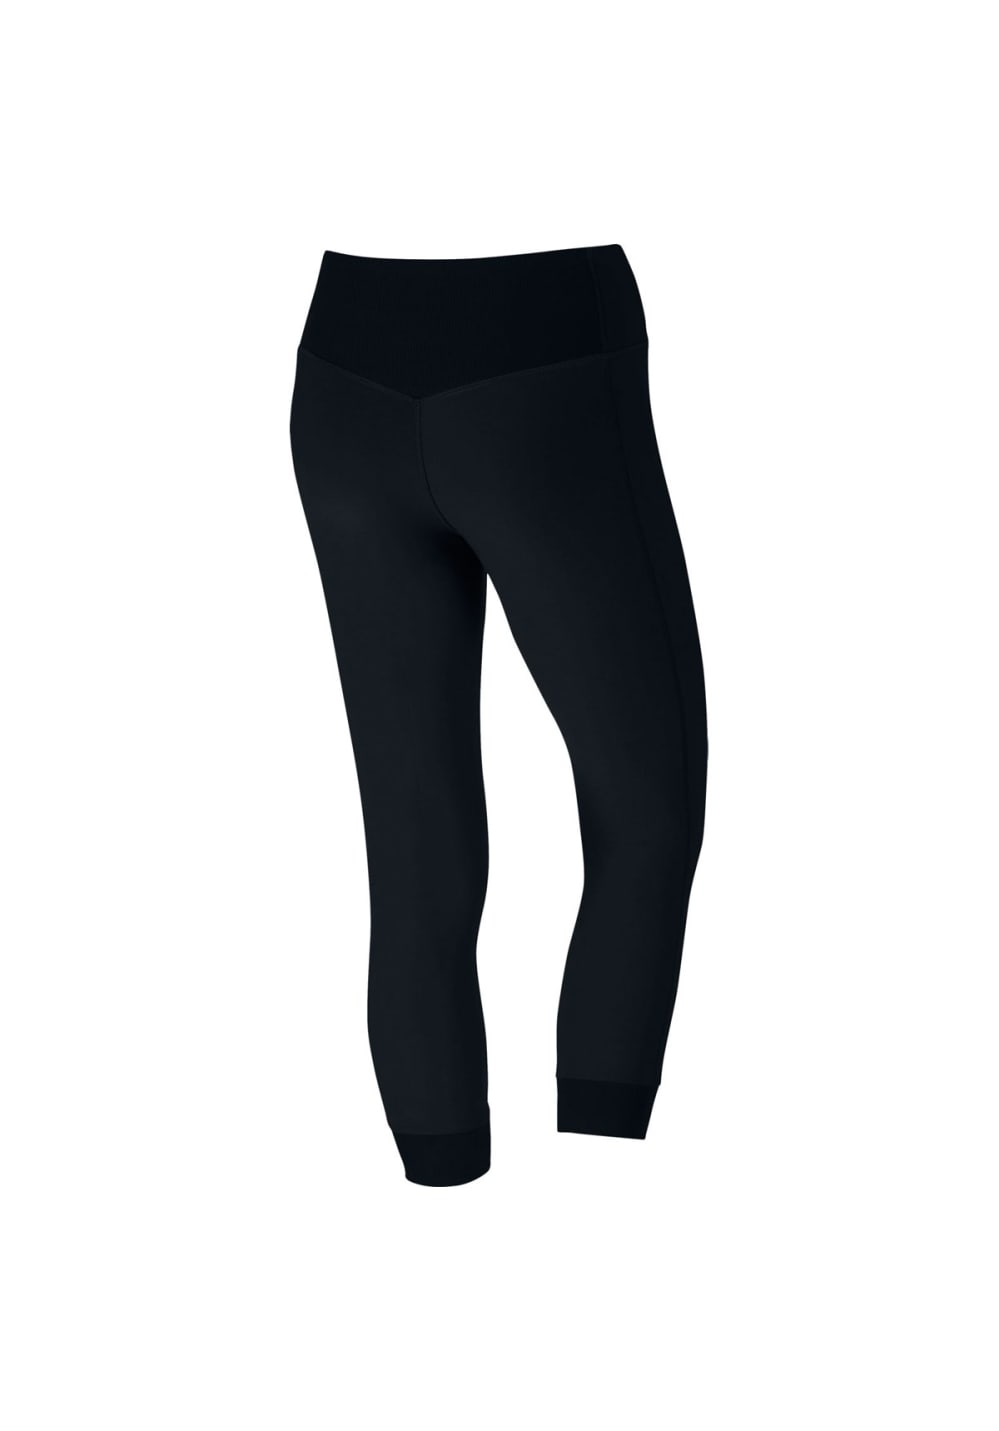 huge selection of 161f7 ba762 nike-power-legend-training-crop-pantalons-course-femme -noir-pid-000000000010125219.jpg